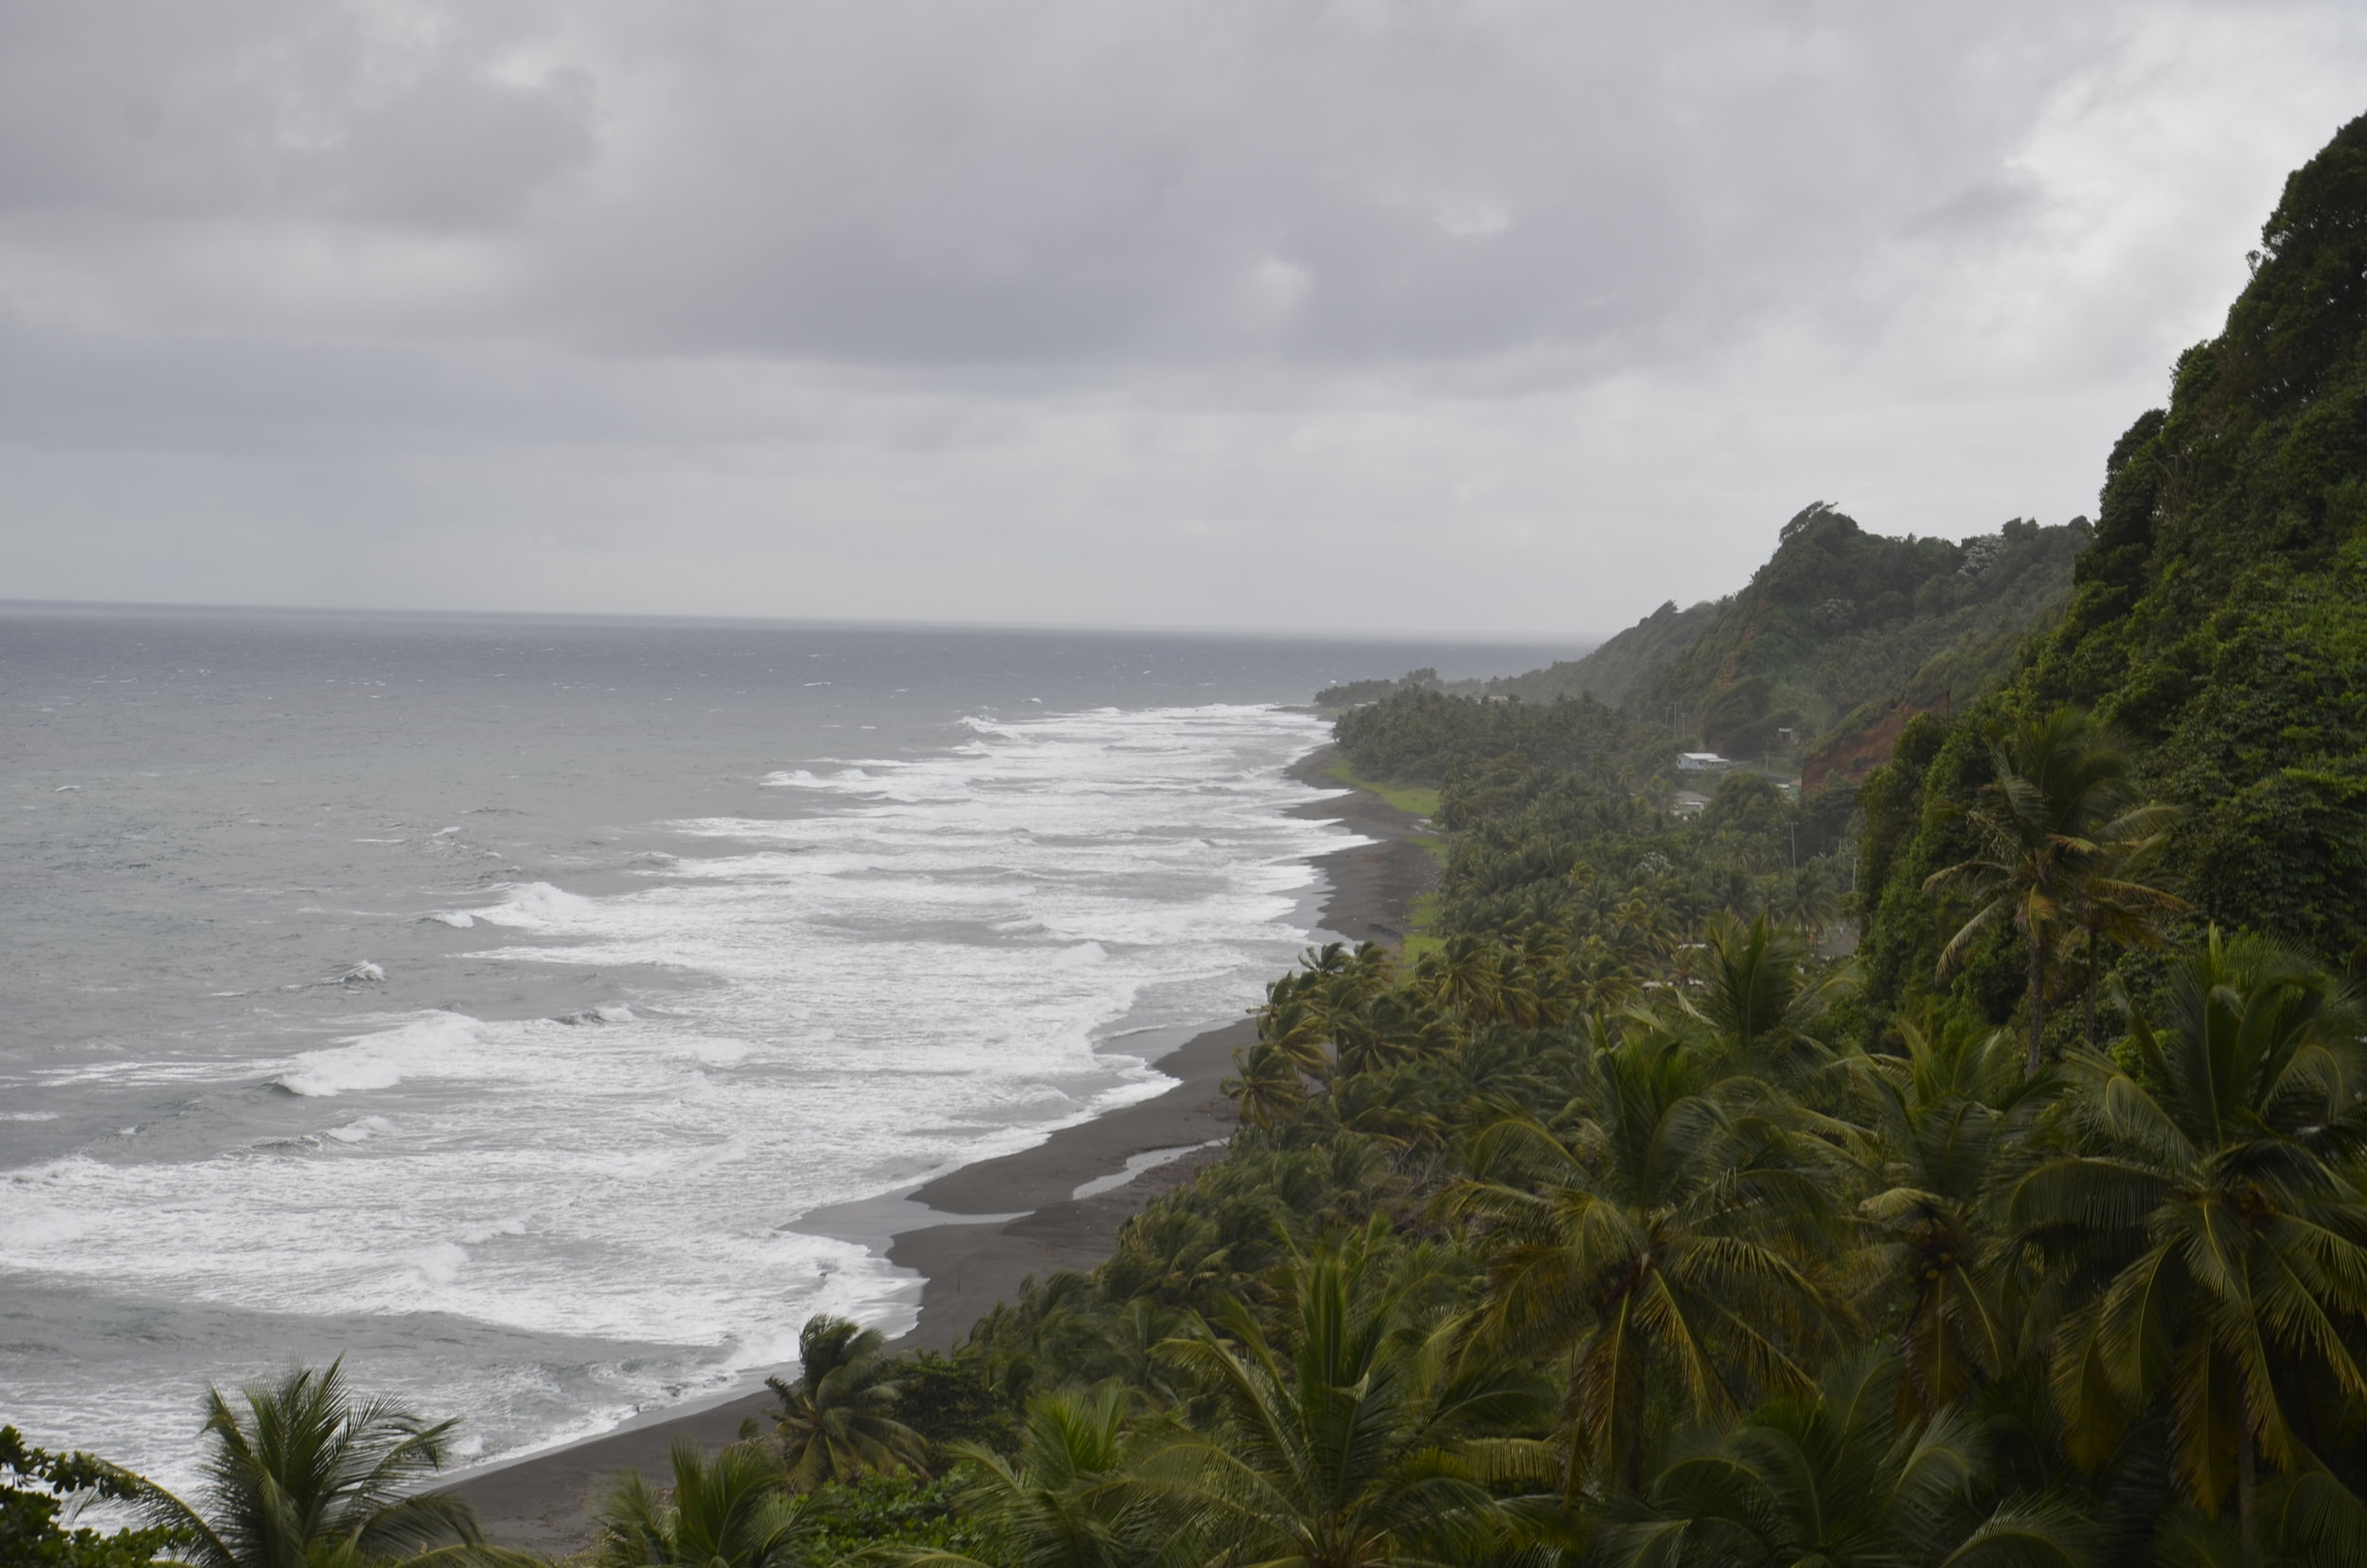 The beaches are mostly black sand, from the volcano.